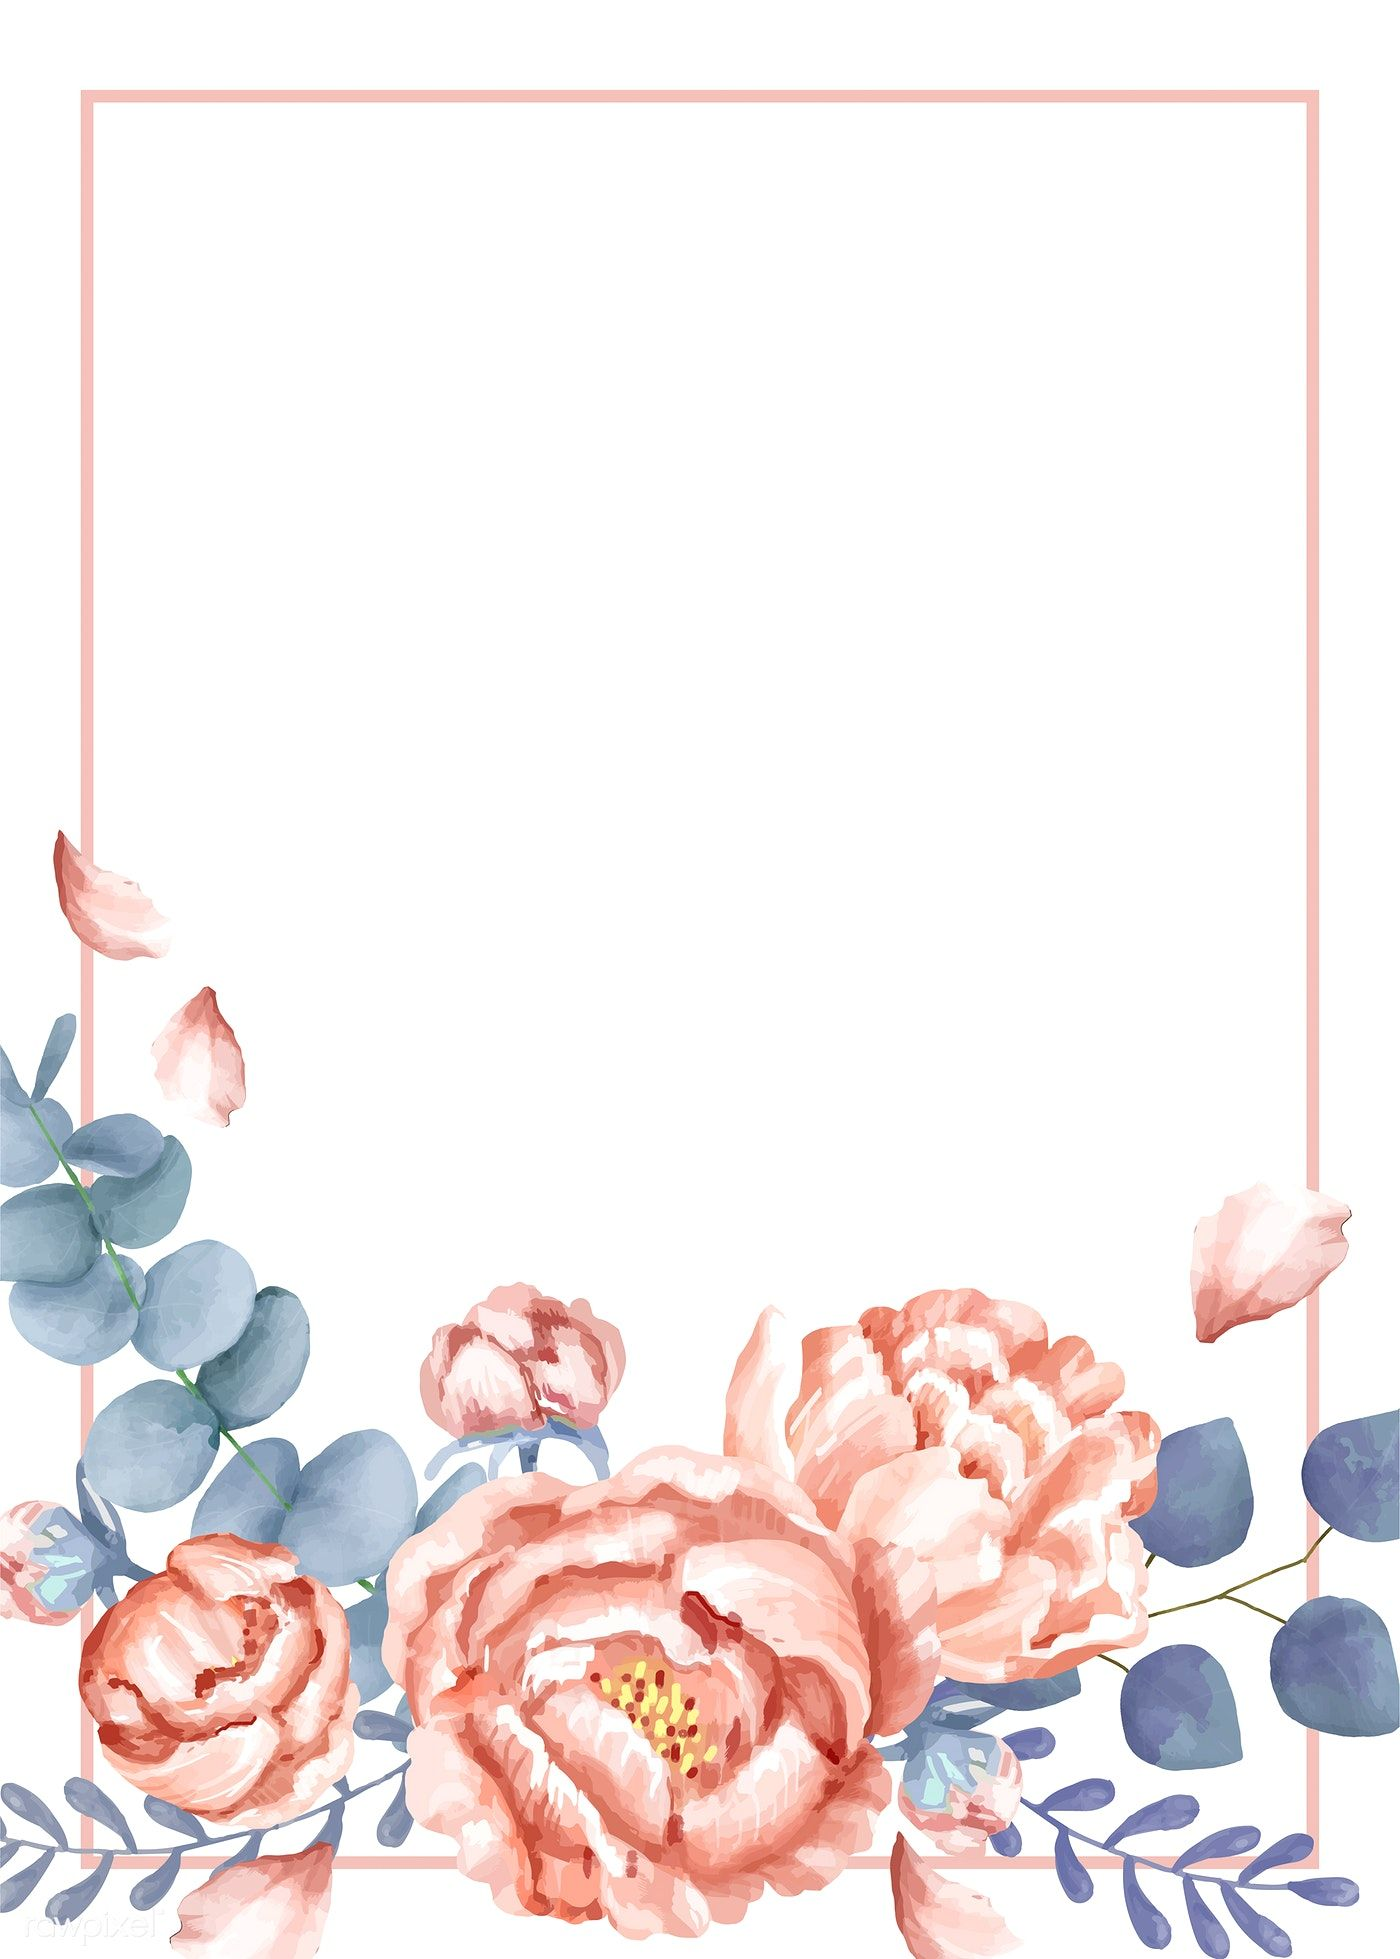 Download Premium Vector Of Invitation Card With A Floral